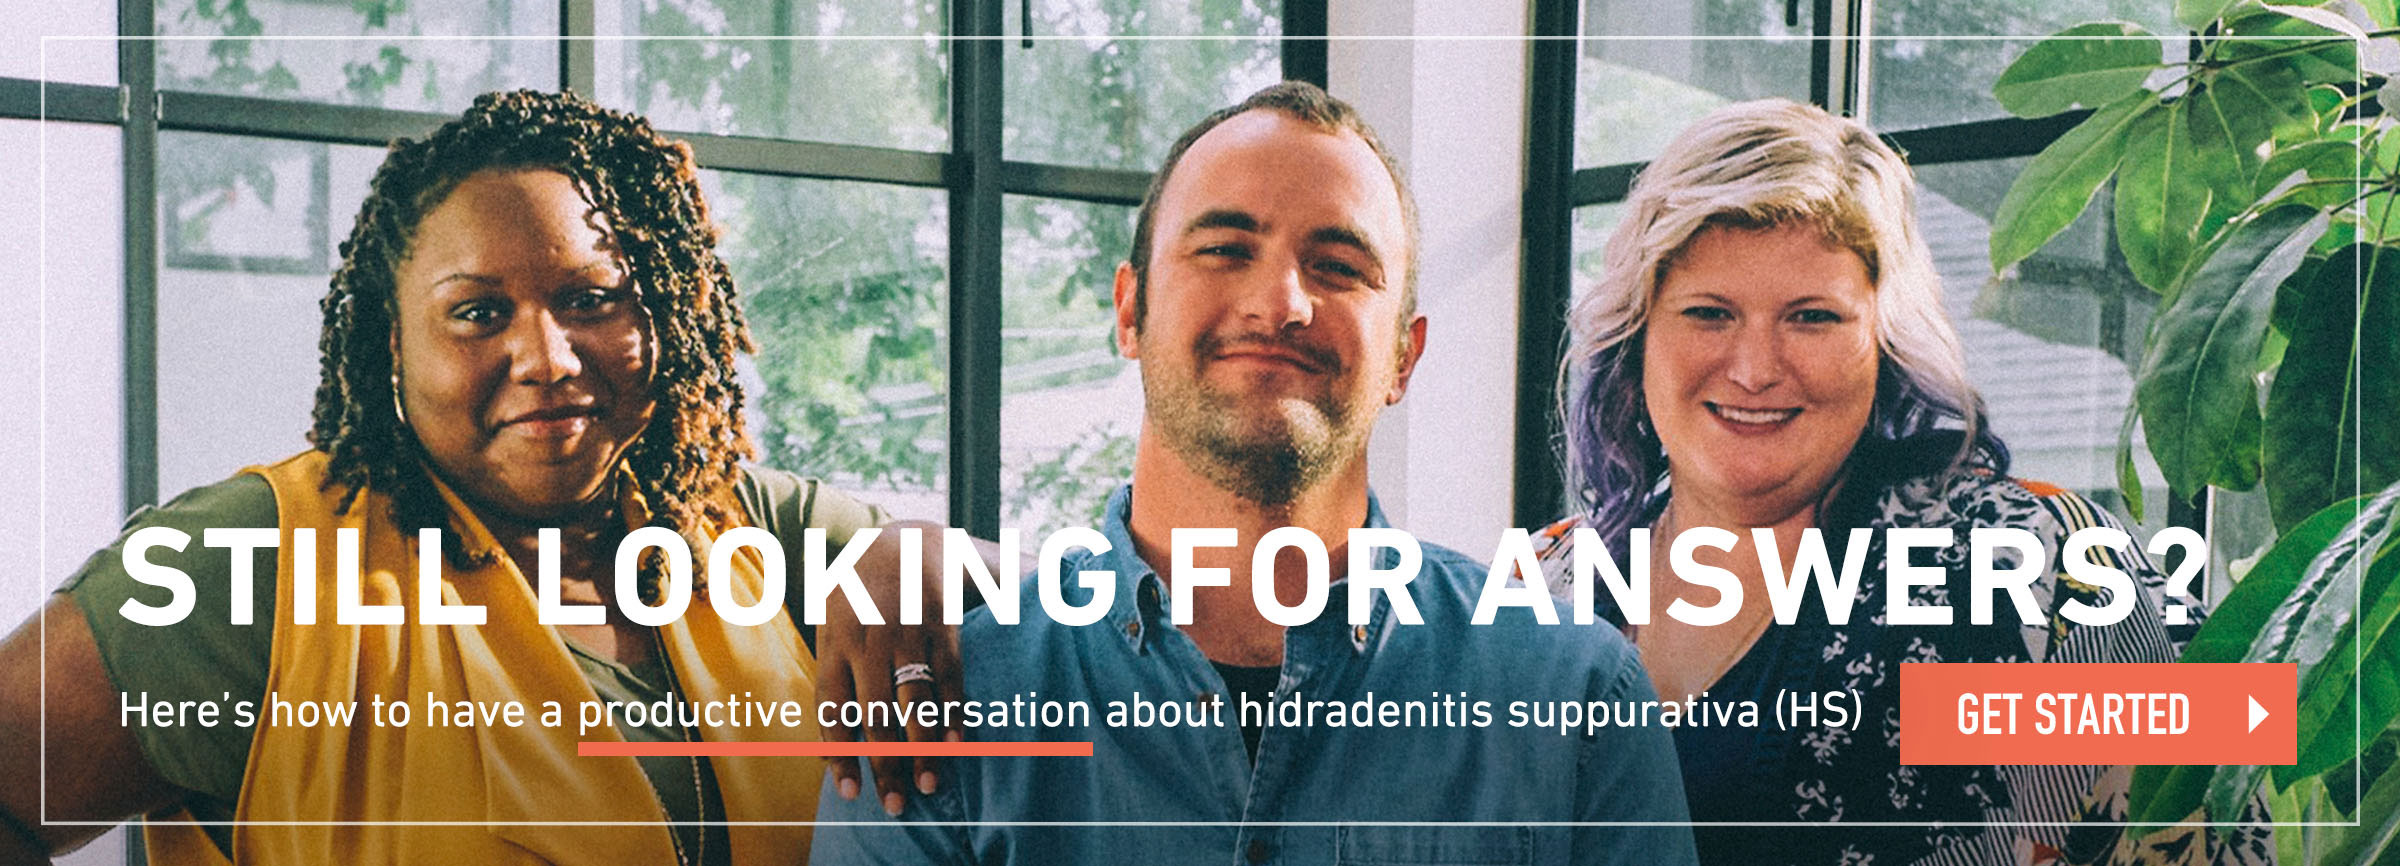 Still looking for hidradenitis suppurativa (HS) answers?